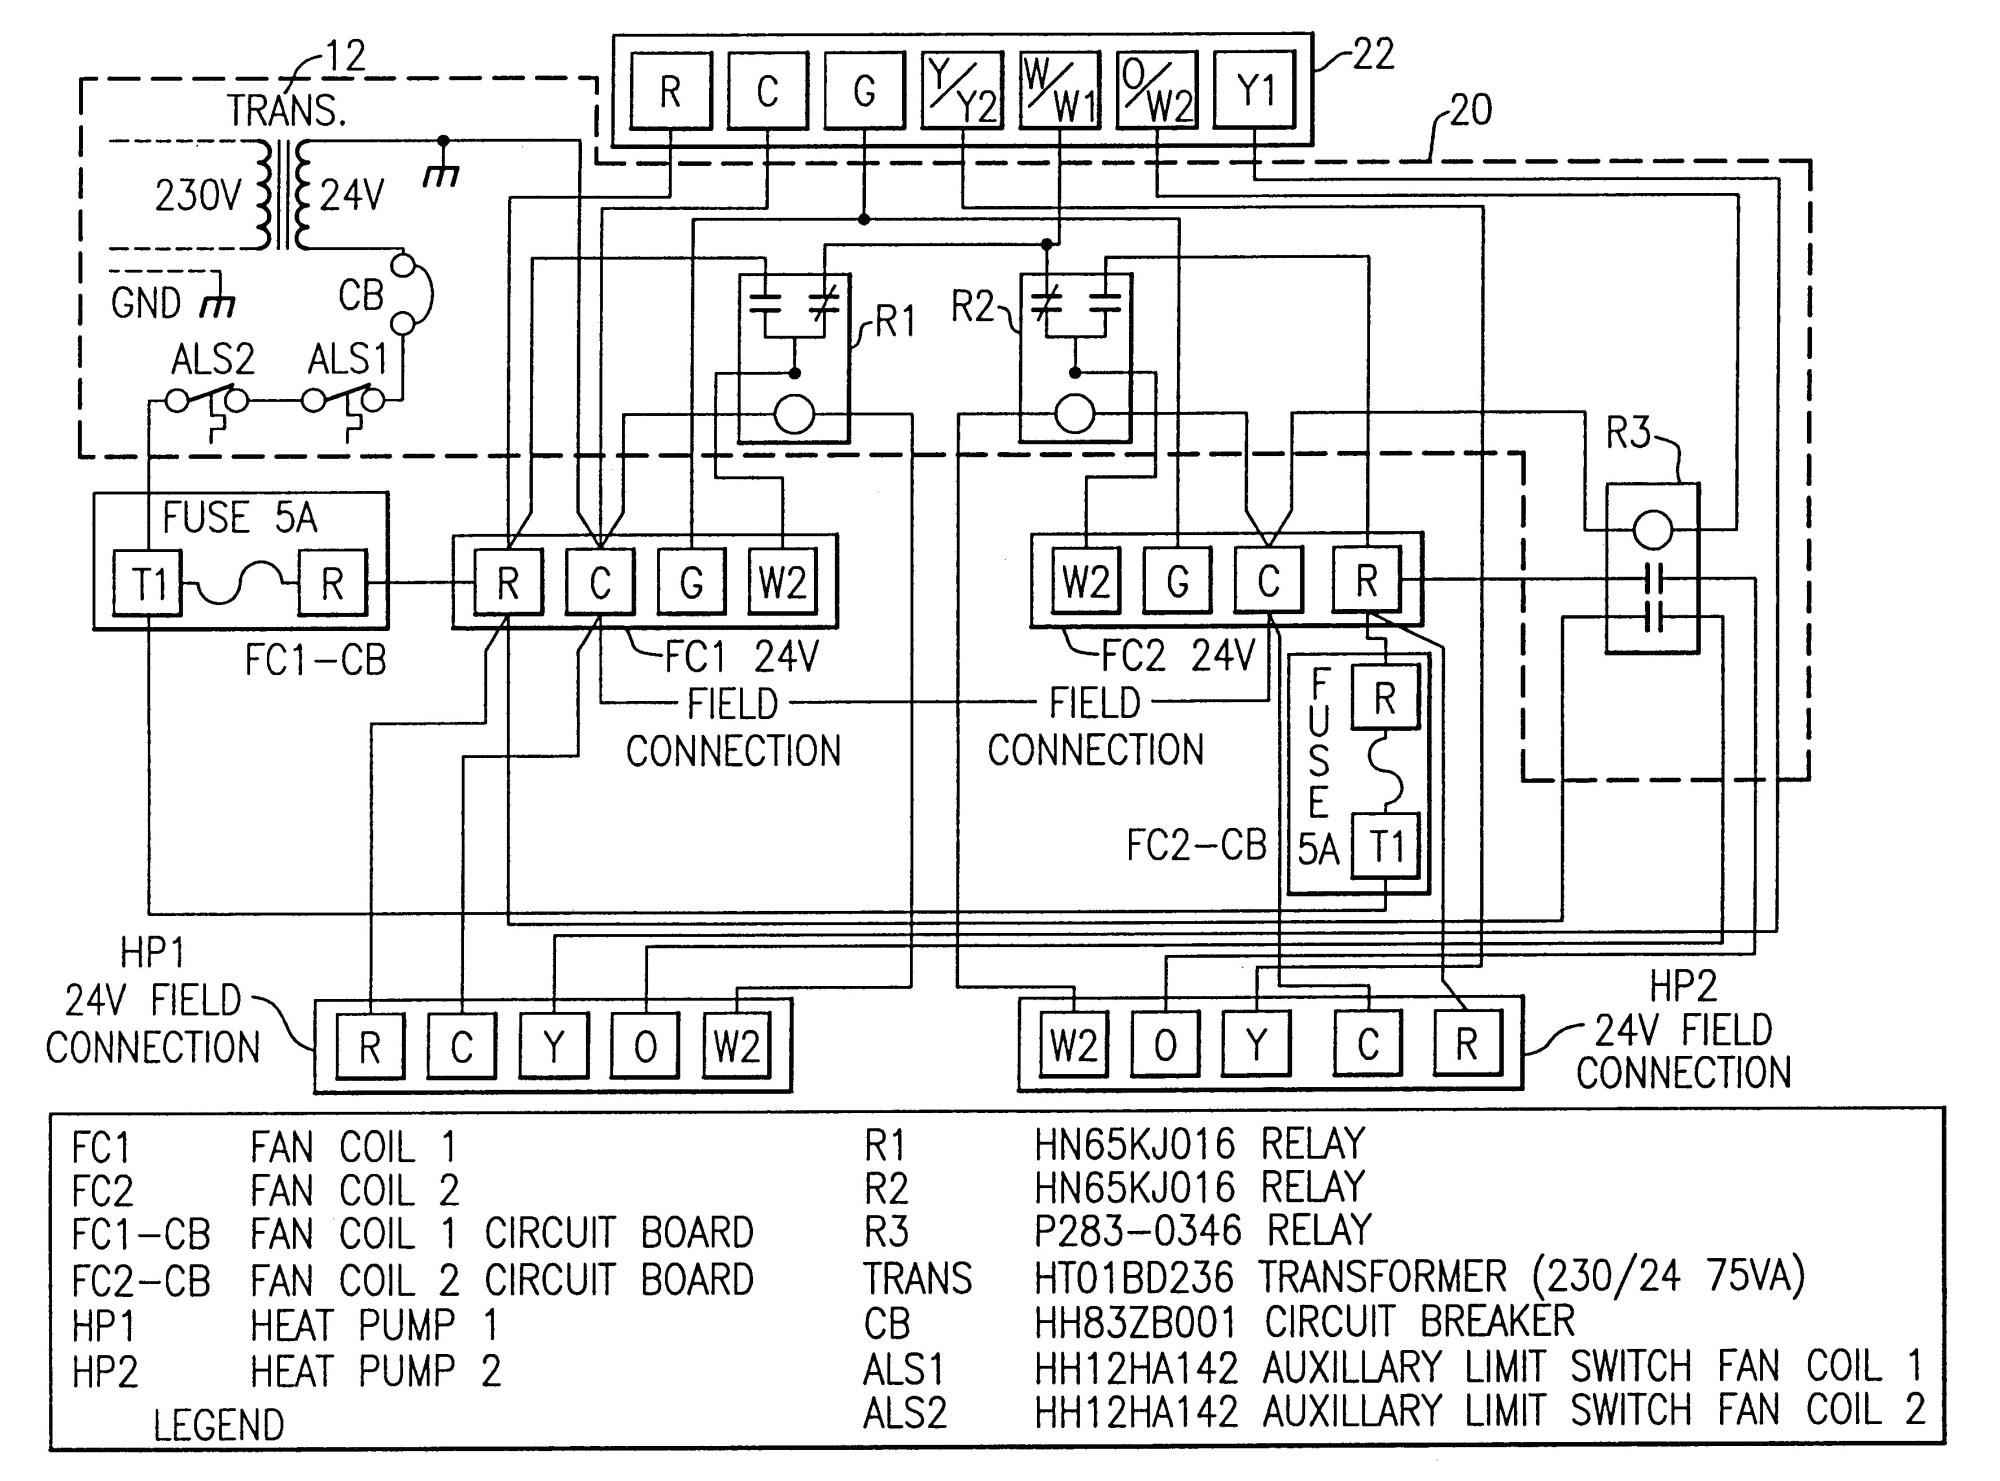 hight resolution of ecp wiring diagram universal wiring diagram american standard thermostat wiring diagram 2000